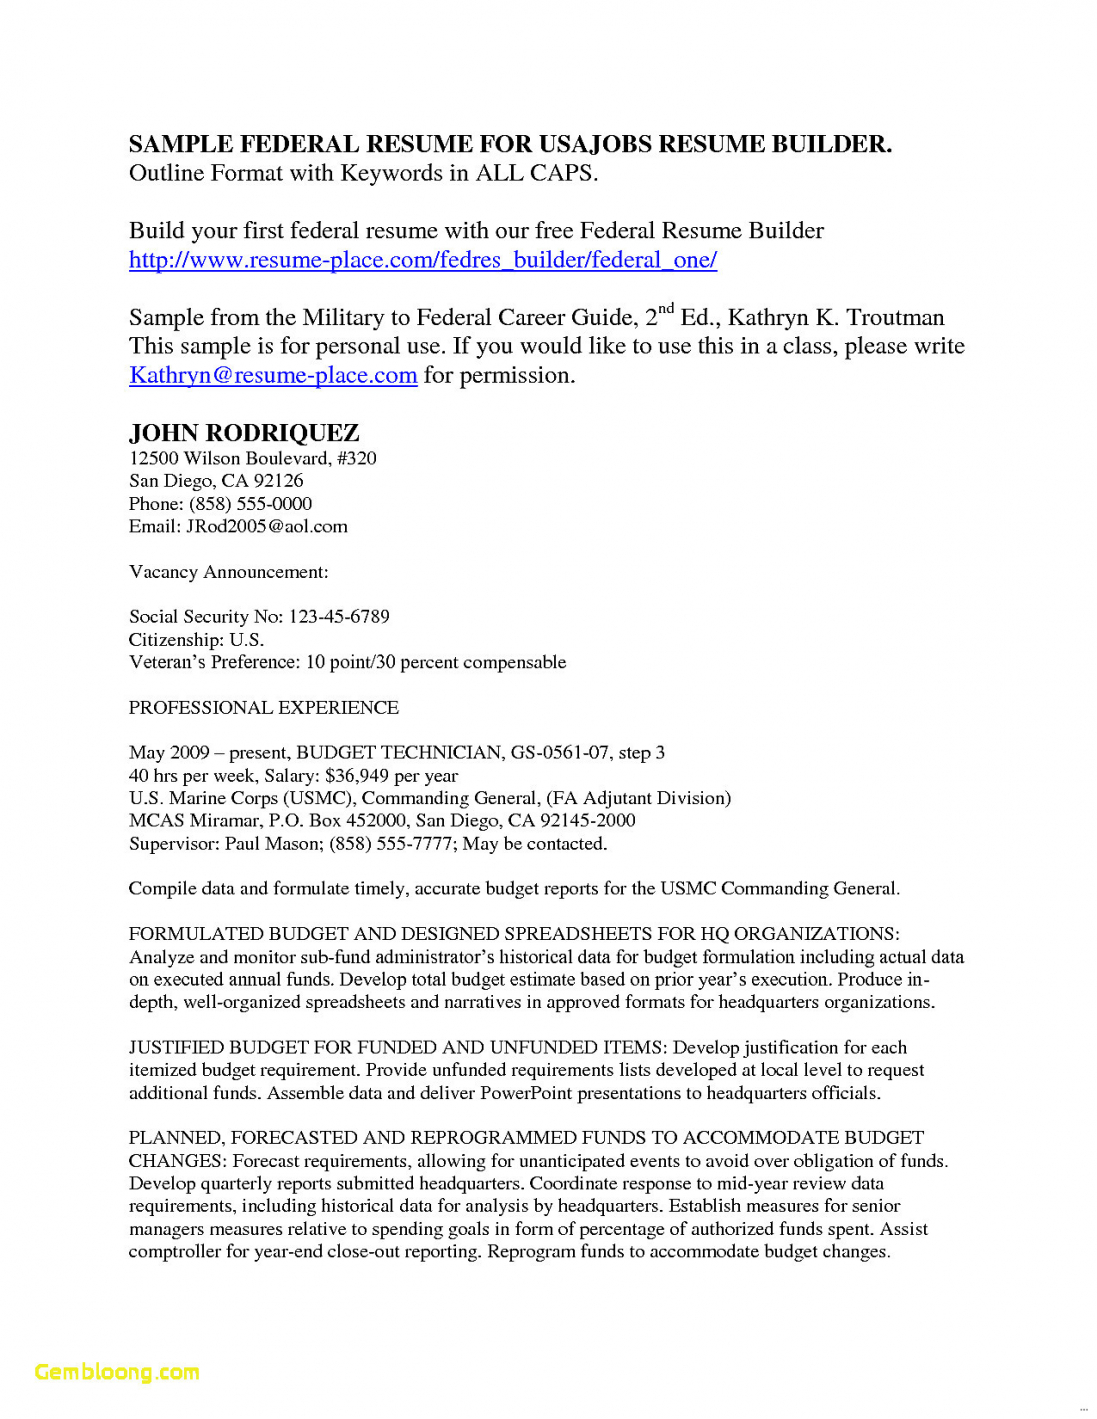 Resume Format For Usa Jobs